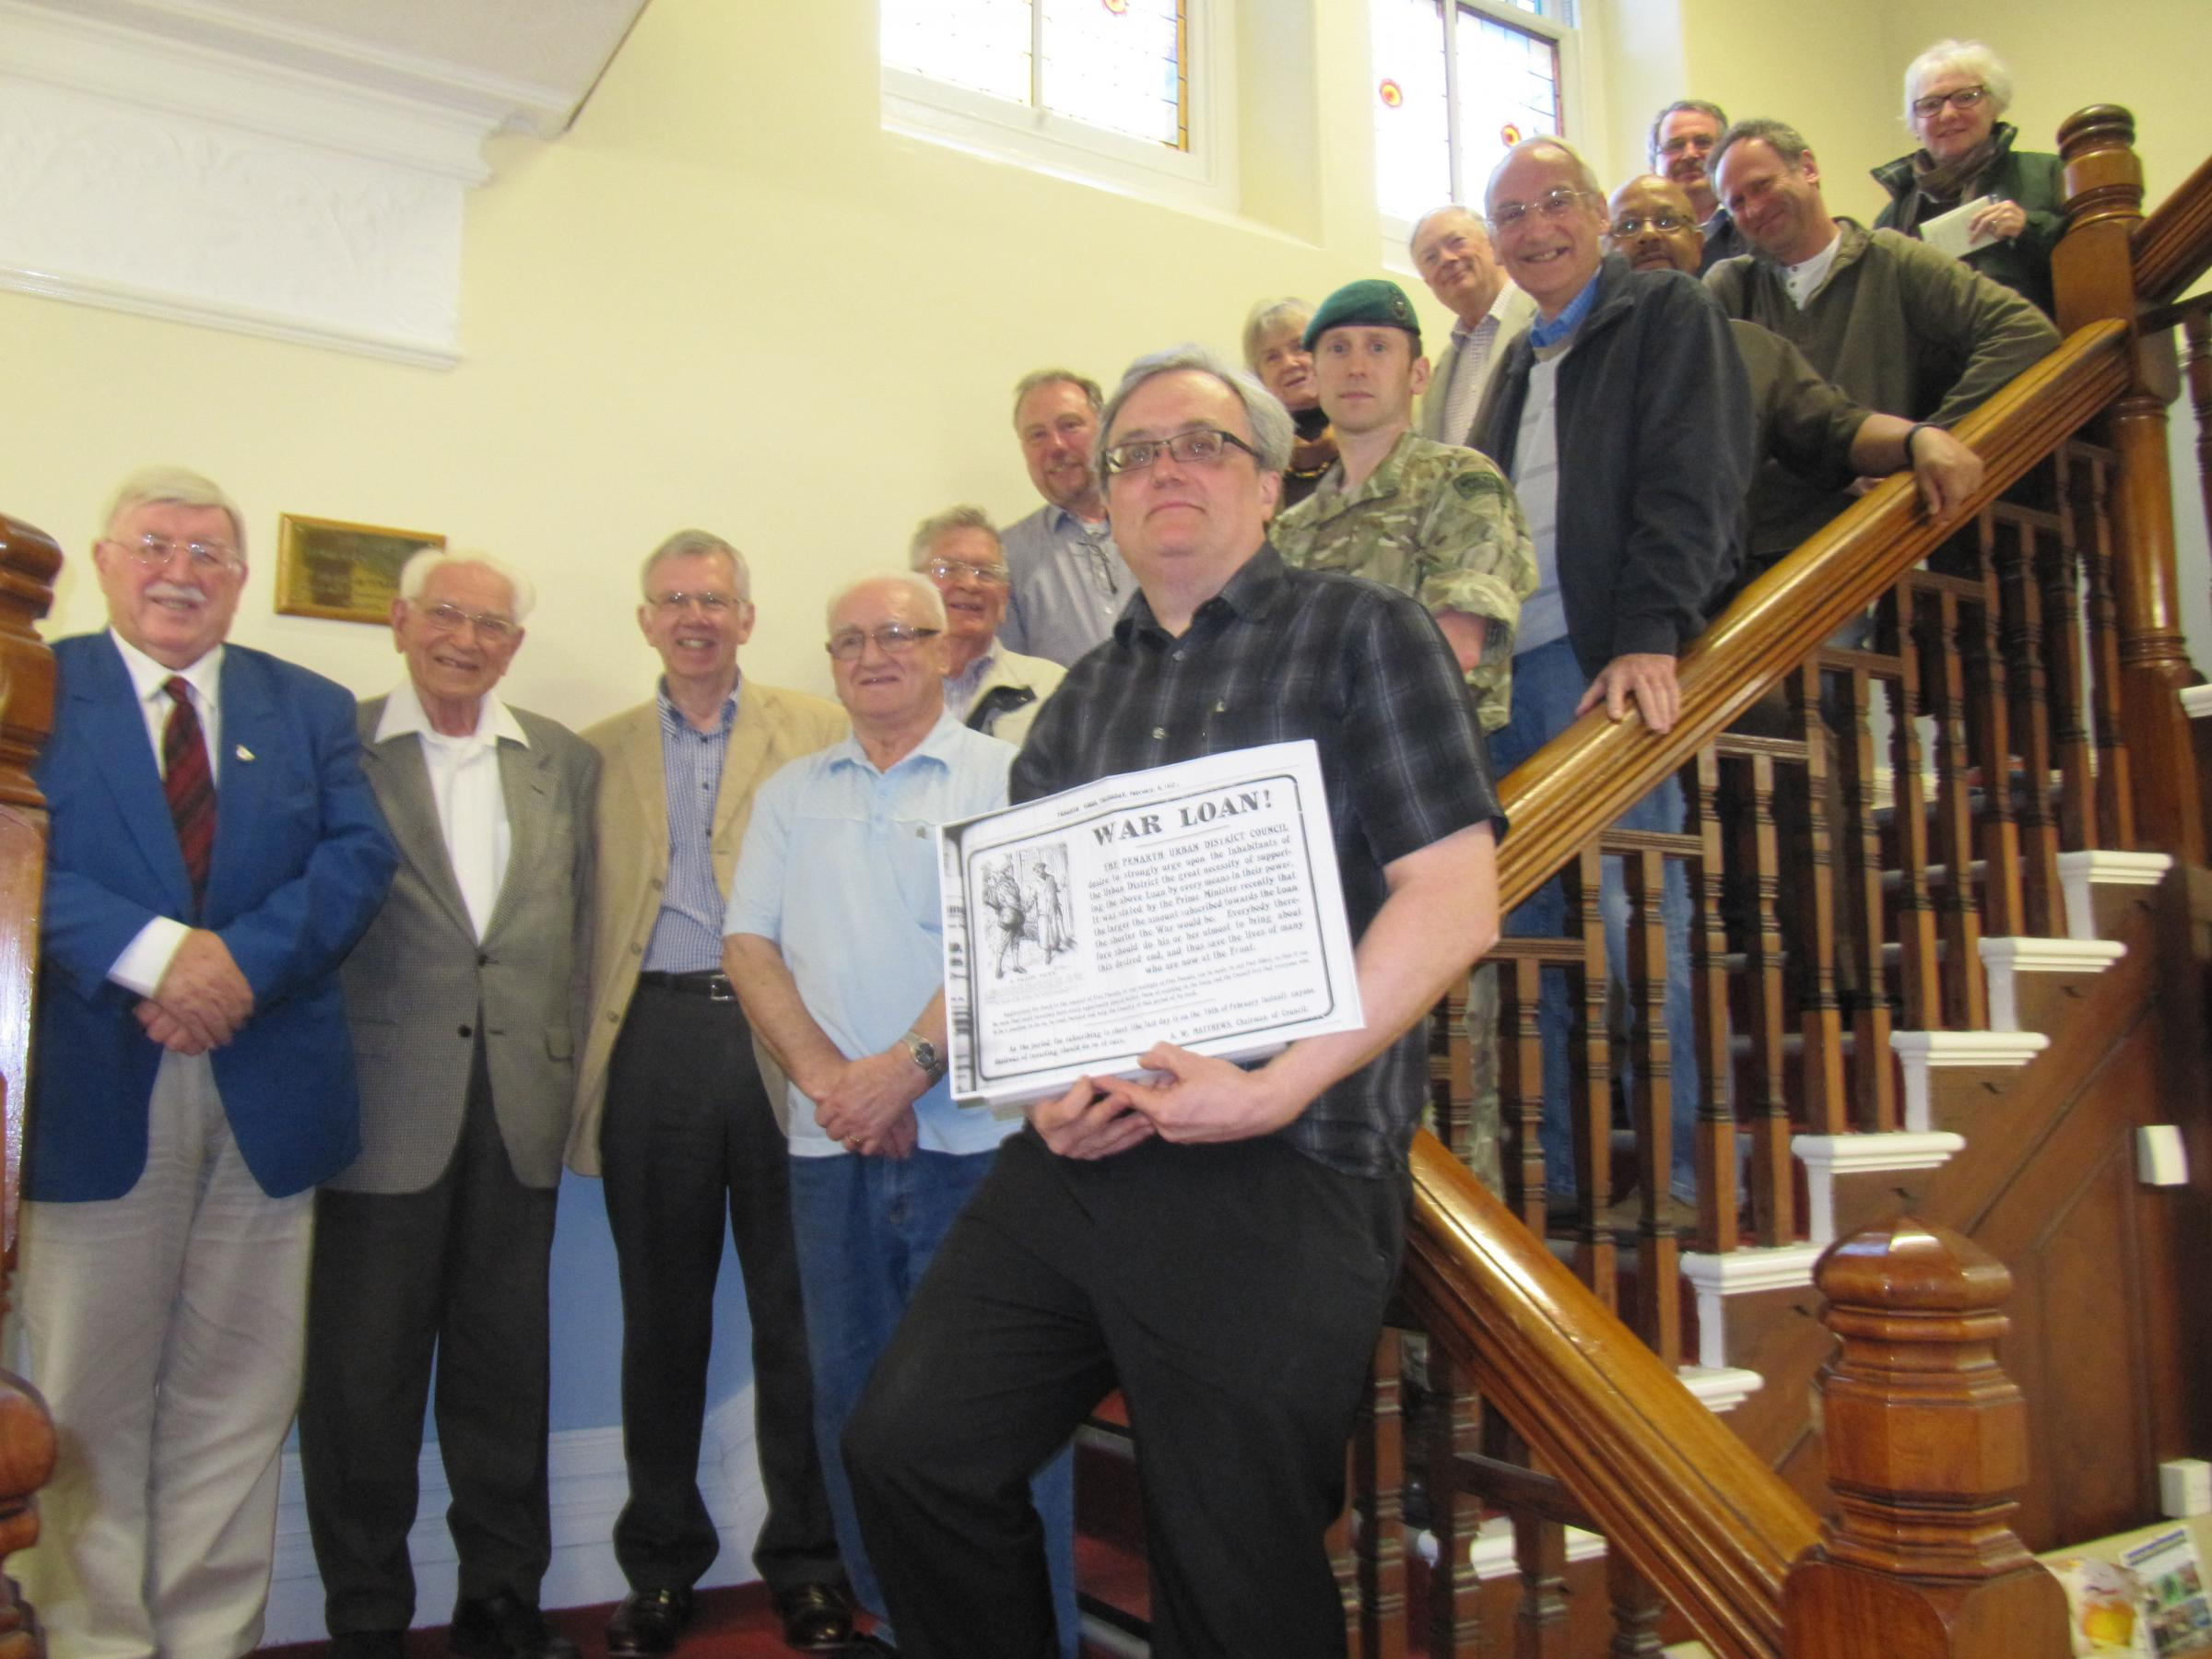 WW1 Commemorative Group set up ahead of centenary